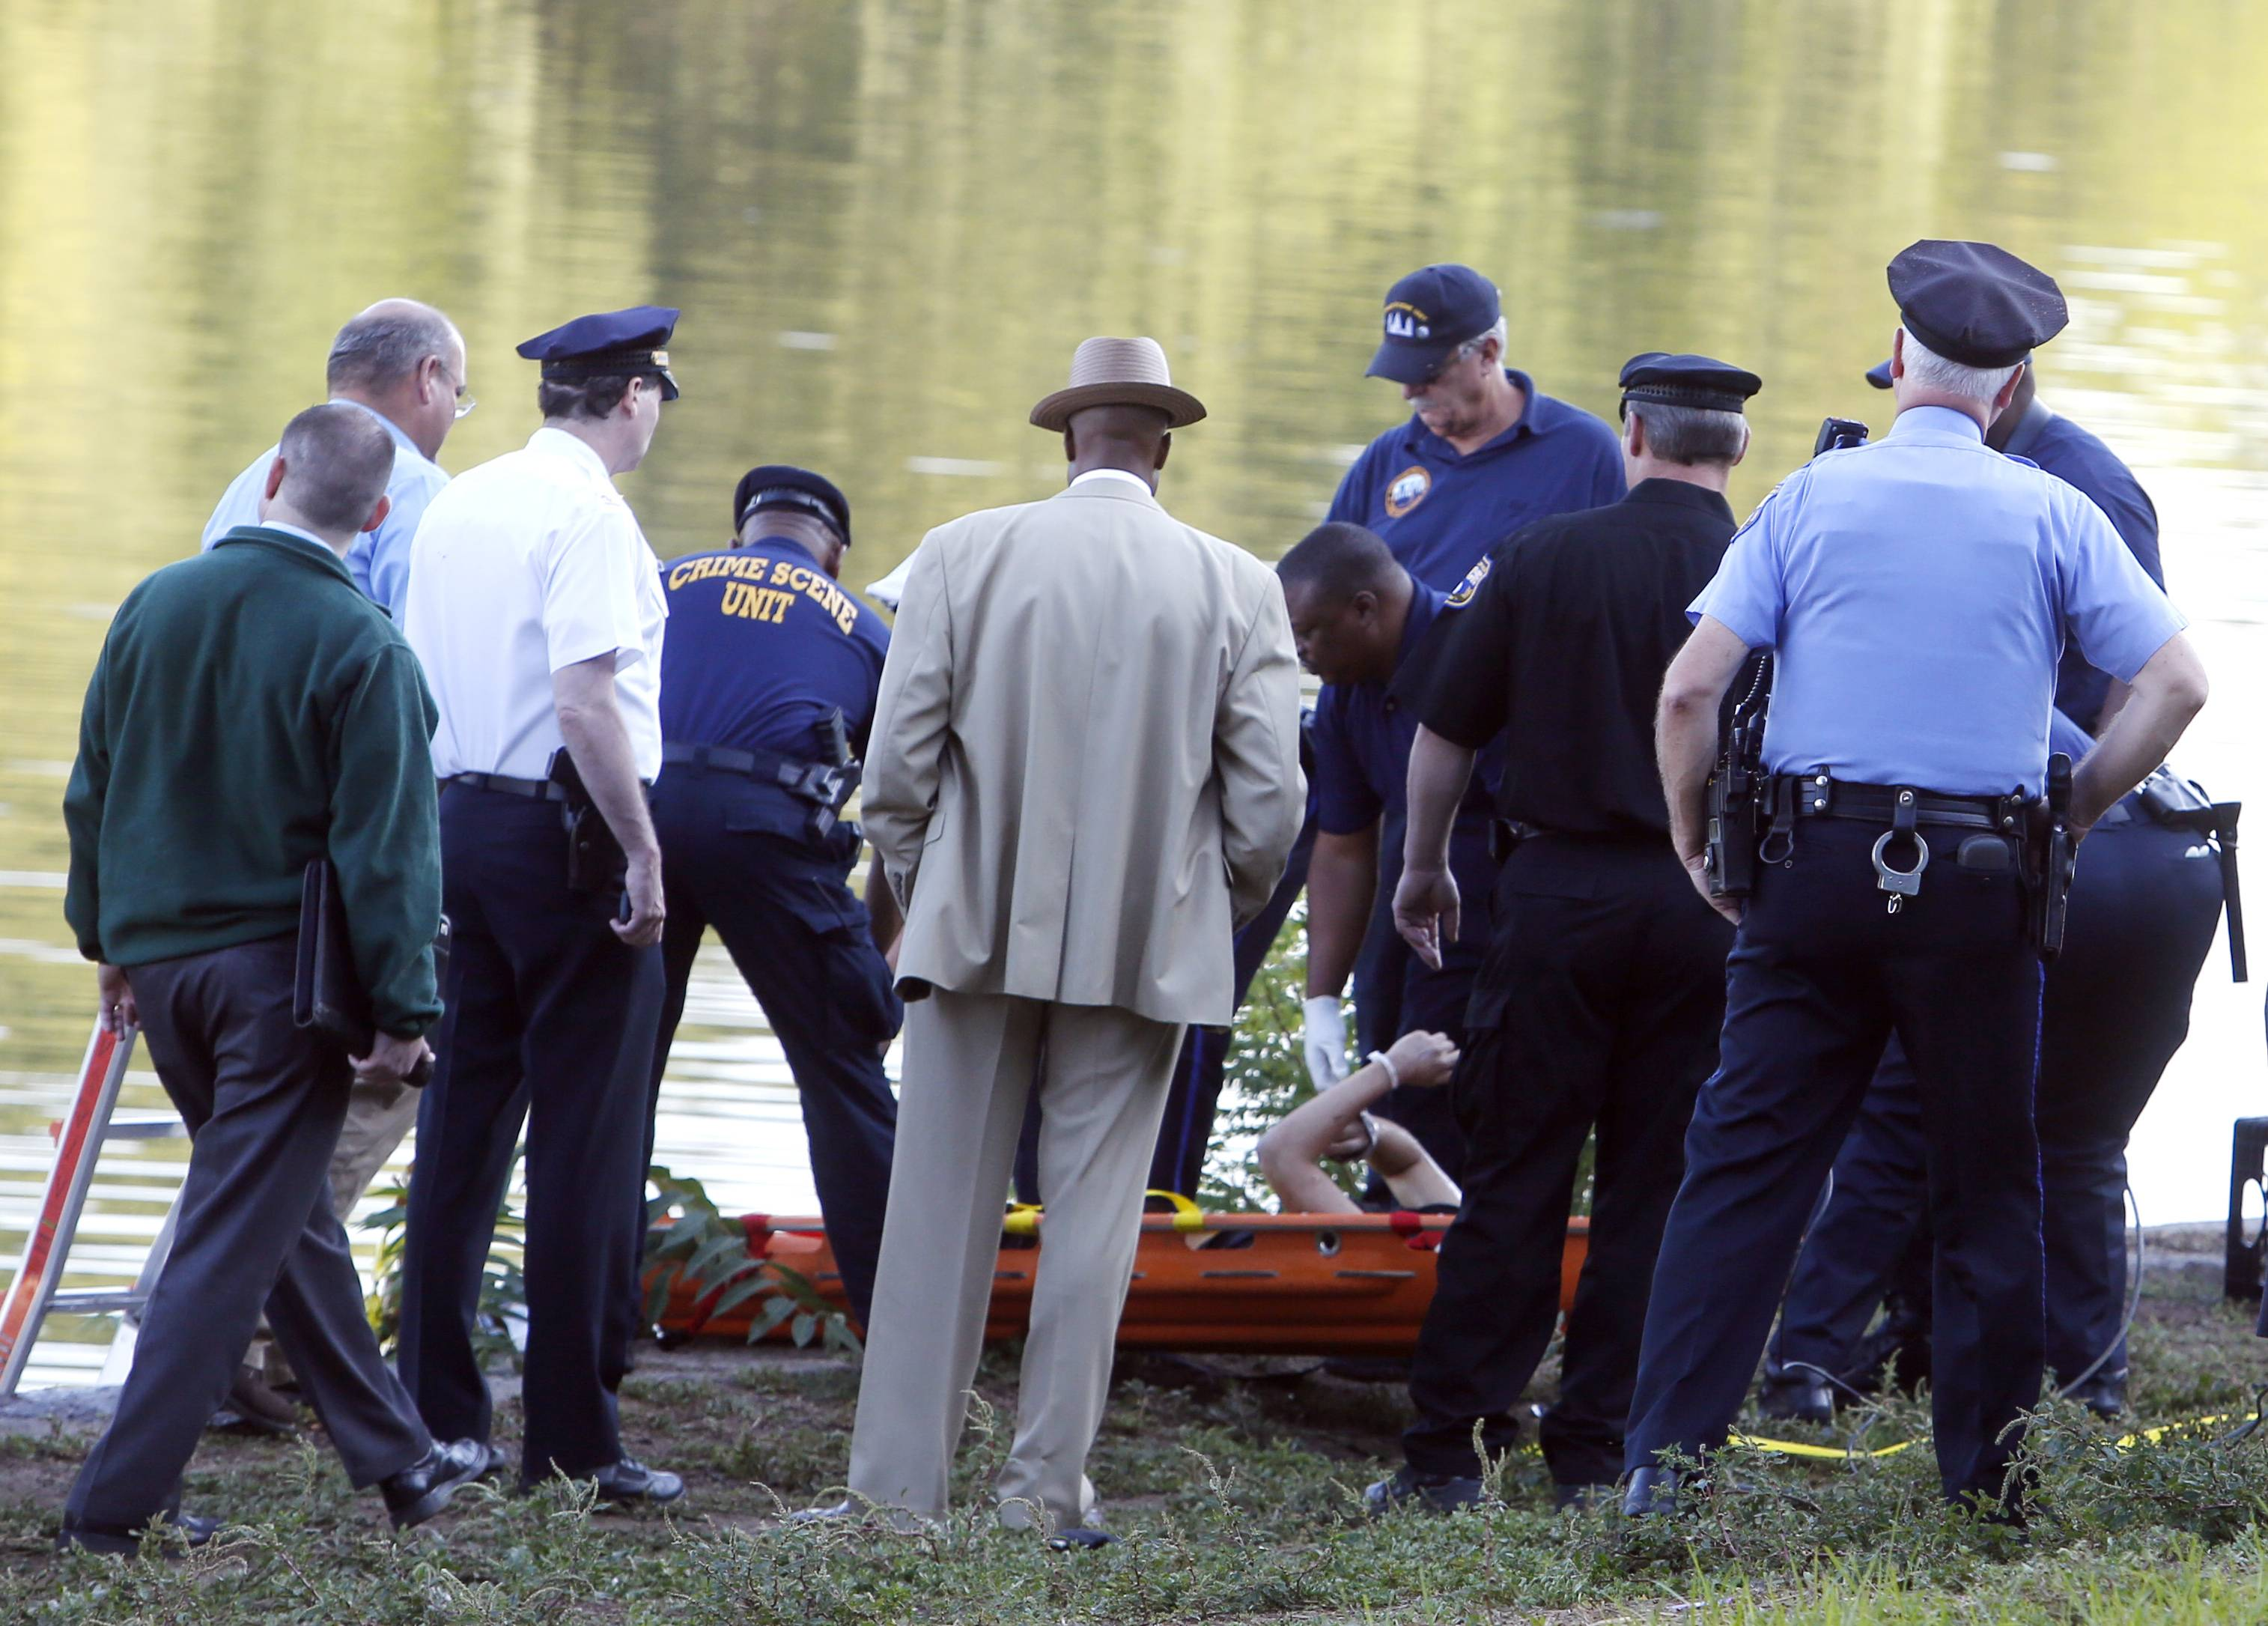 The bound bodies of two people were found in the Schuylkill River in Philadelphia Wednesday, and a third man who said he managed to free himself is being treated at a hospital for stab wounds, police said.